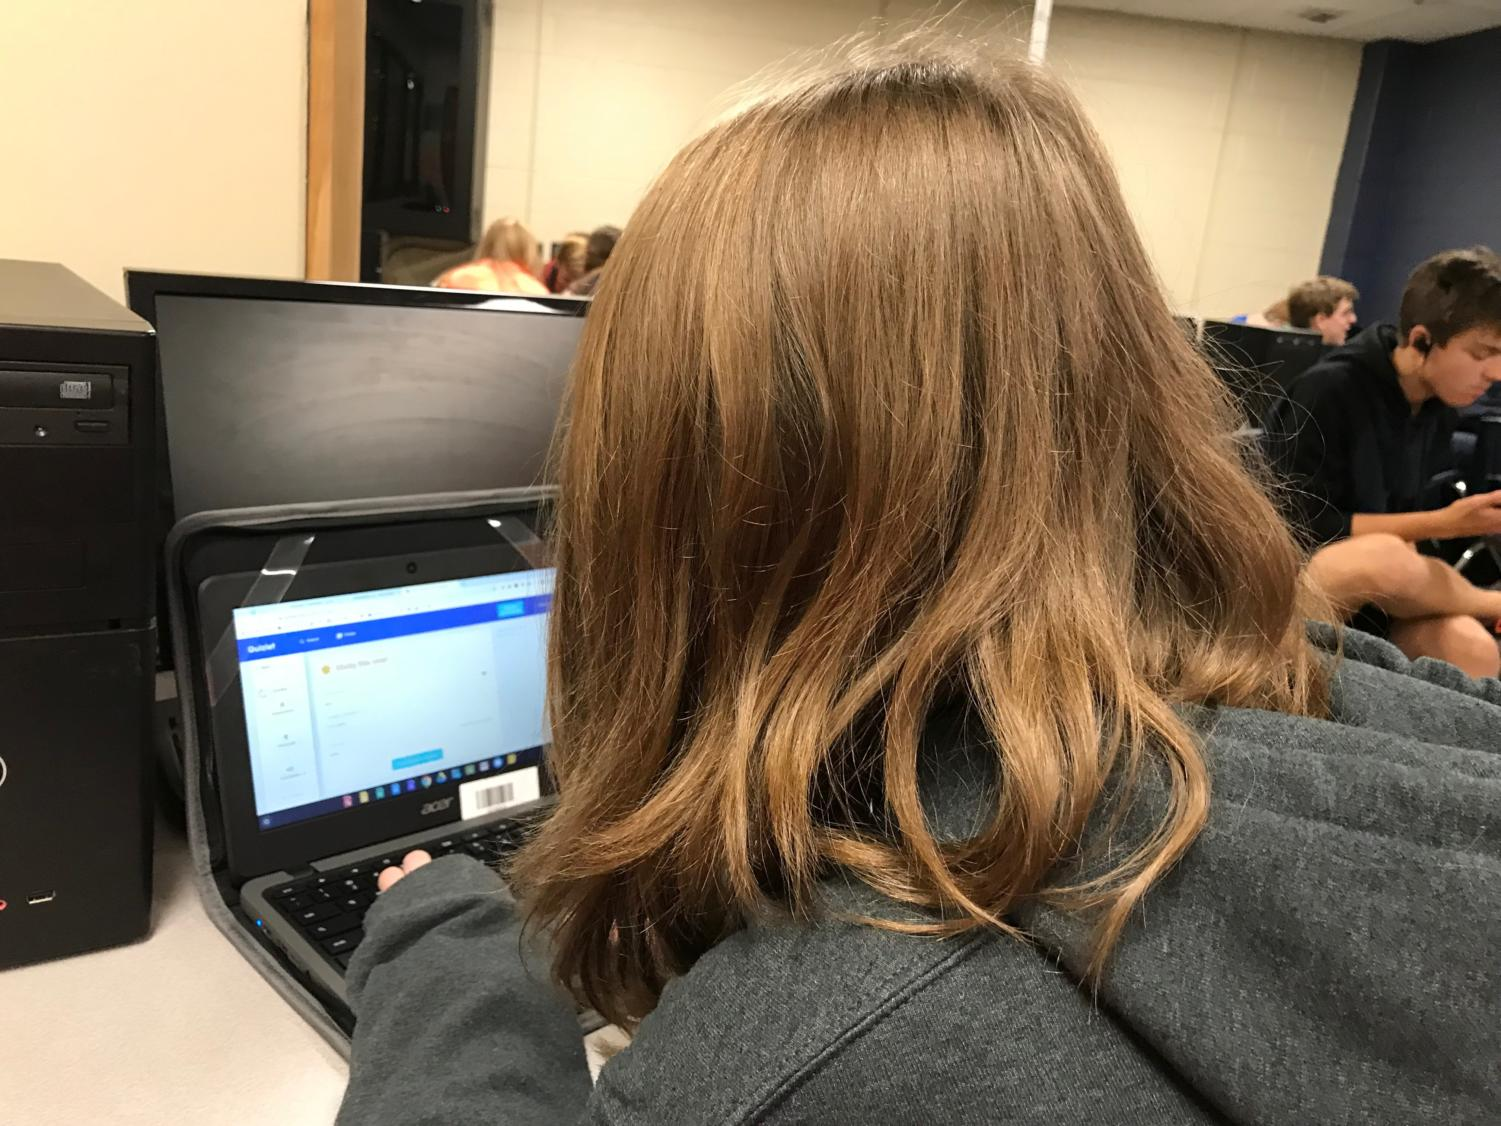 Hailey Smith ('23) studies on a computer for an upcoming test.